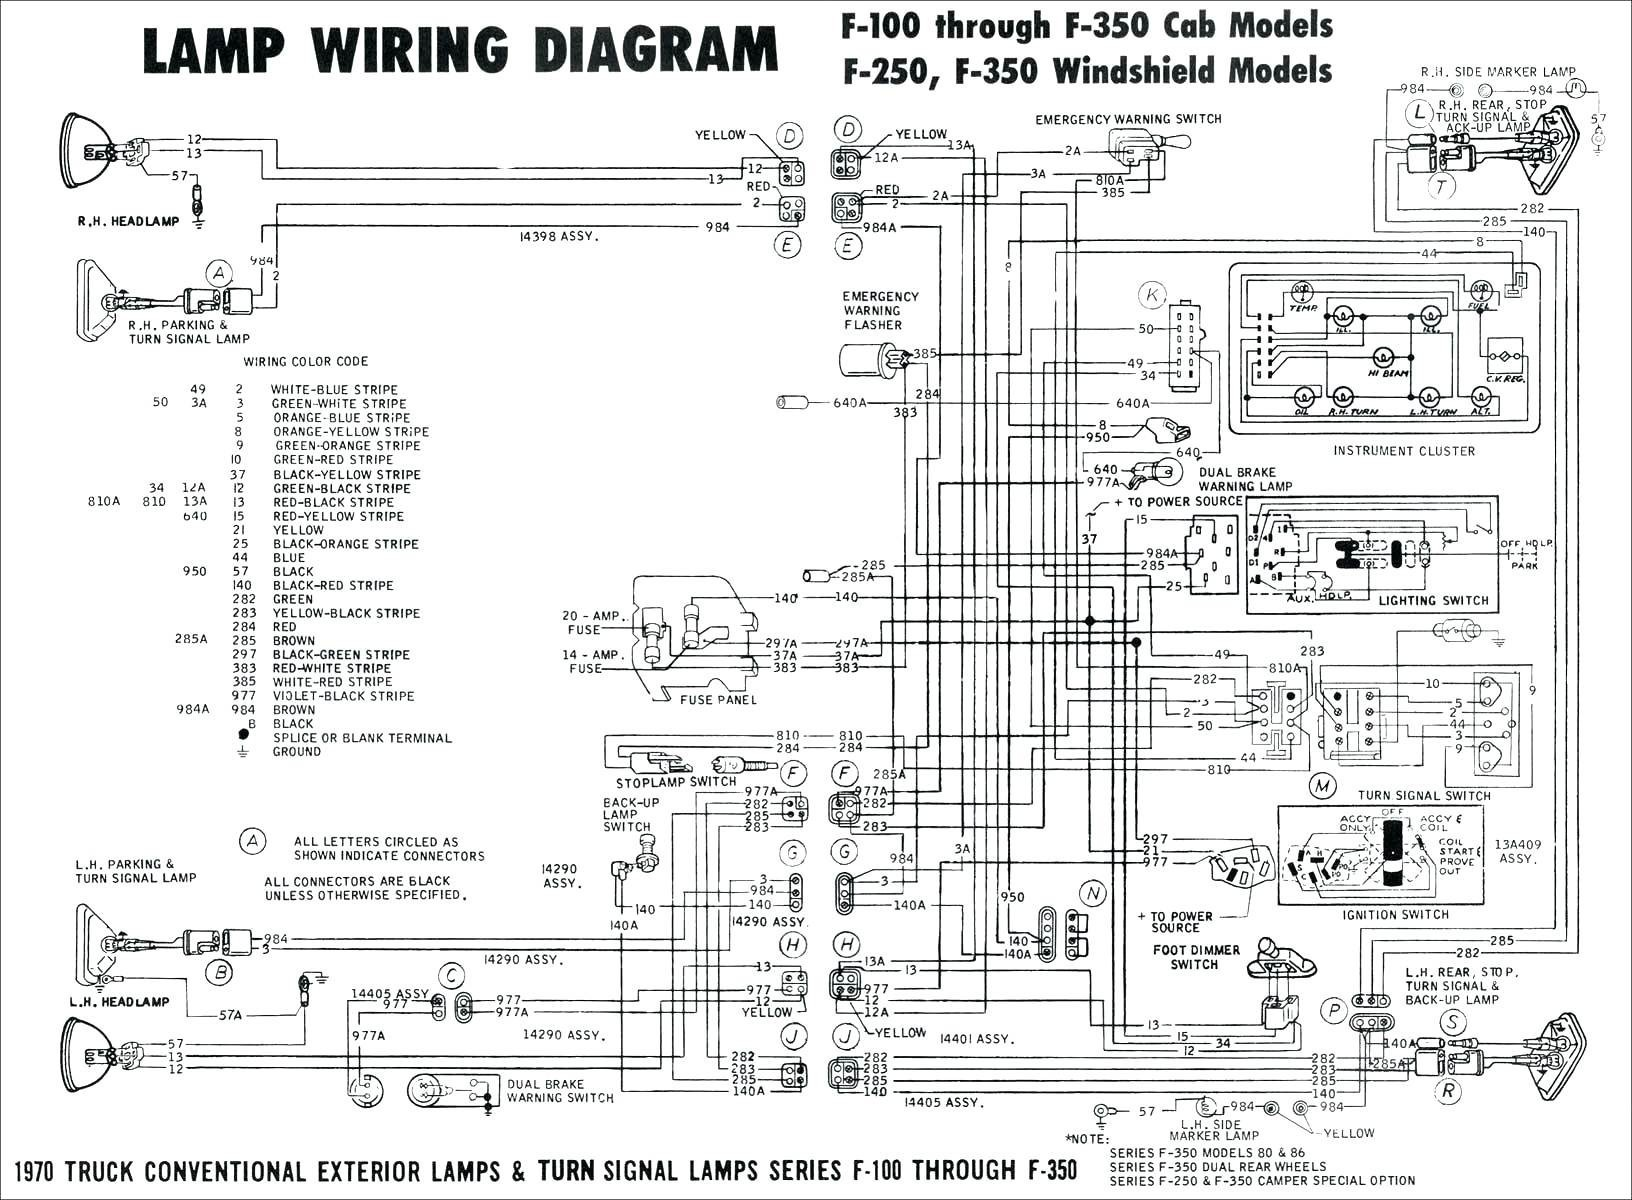 2001 ford ranger dome light unique 2000 ford ranger dome light wiring diagram free download wiring of 2001 ford ranger dome light imperial deep fryer wiring diagram schematic diagram